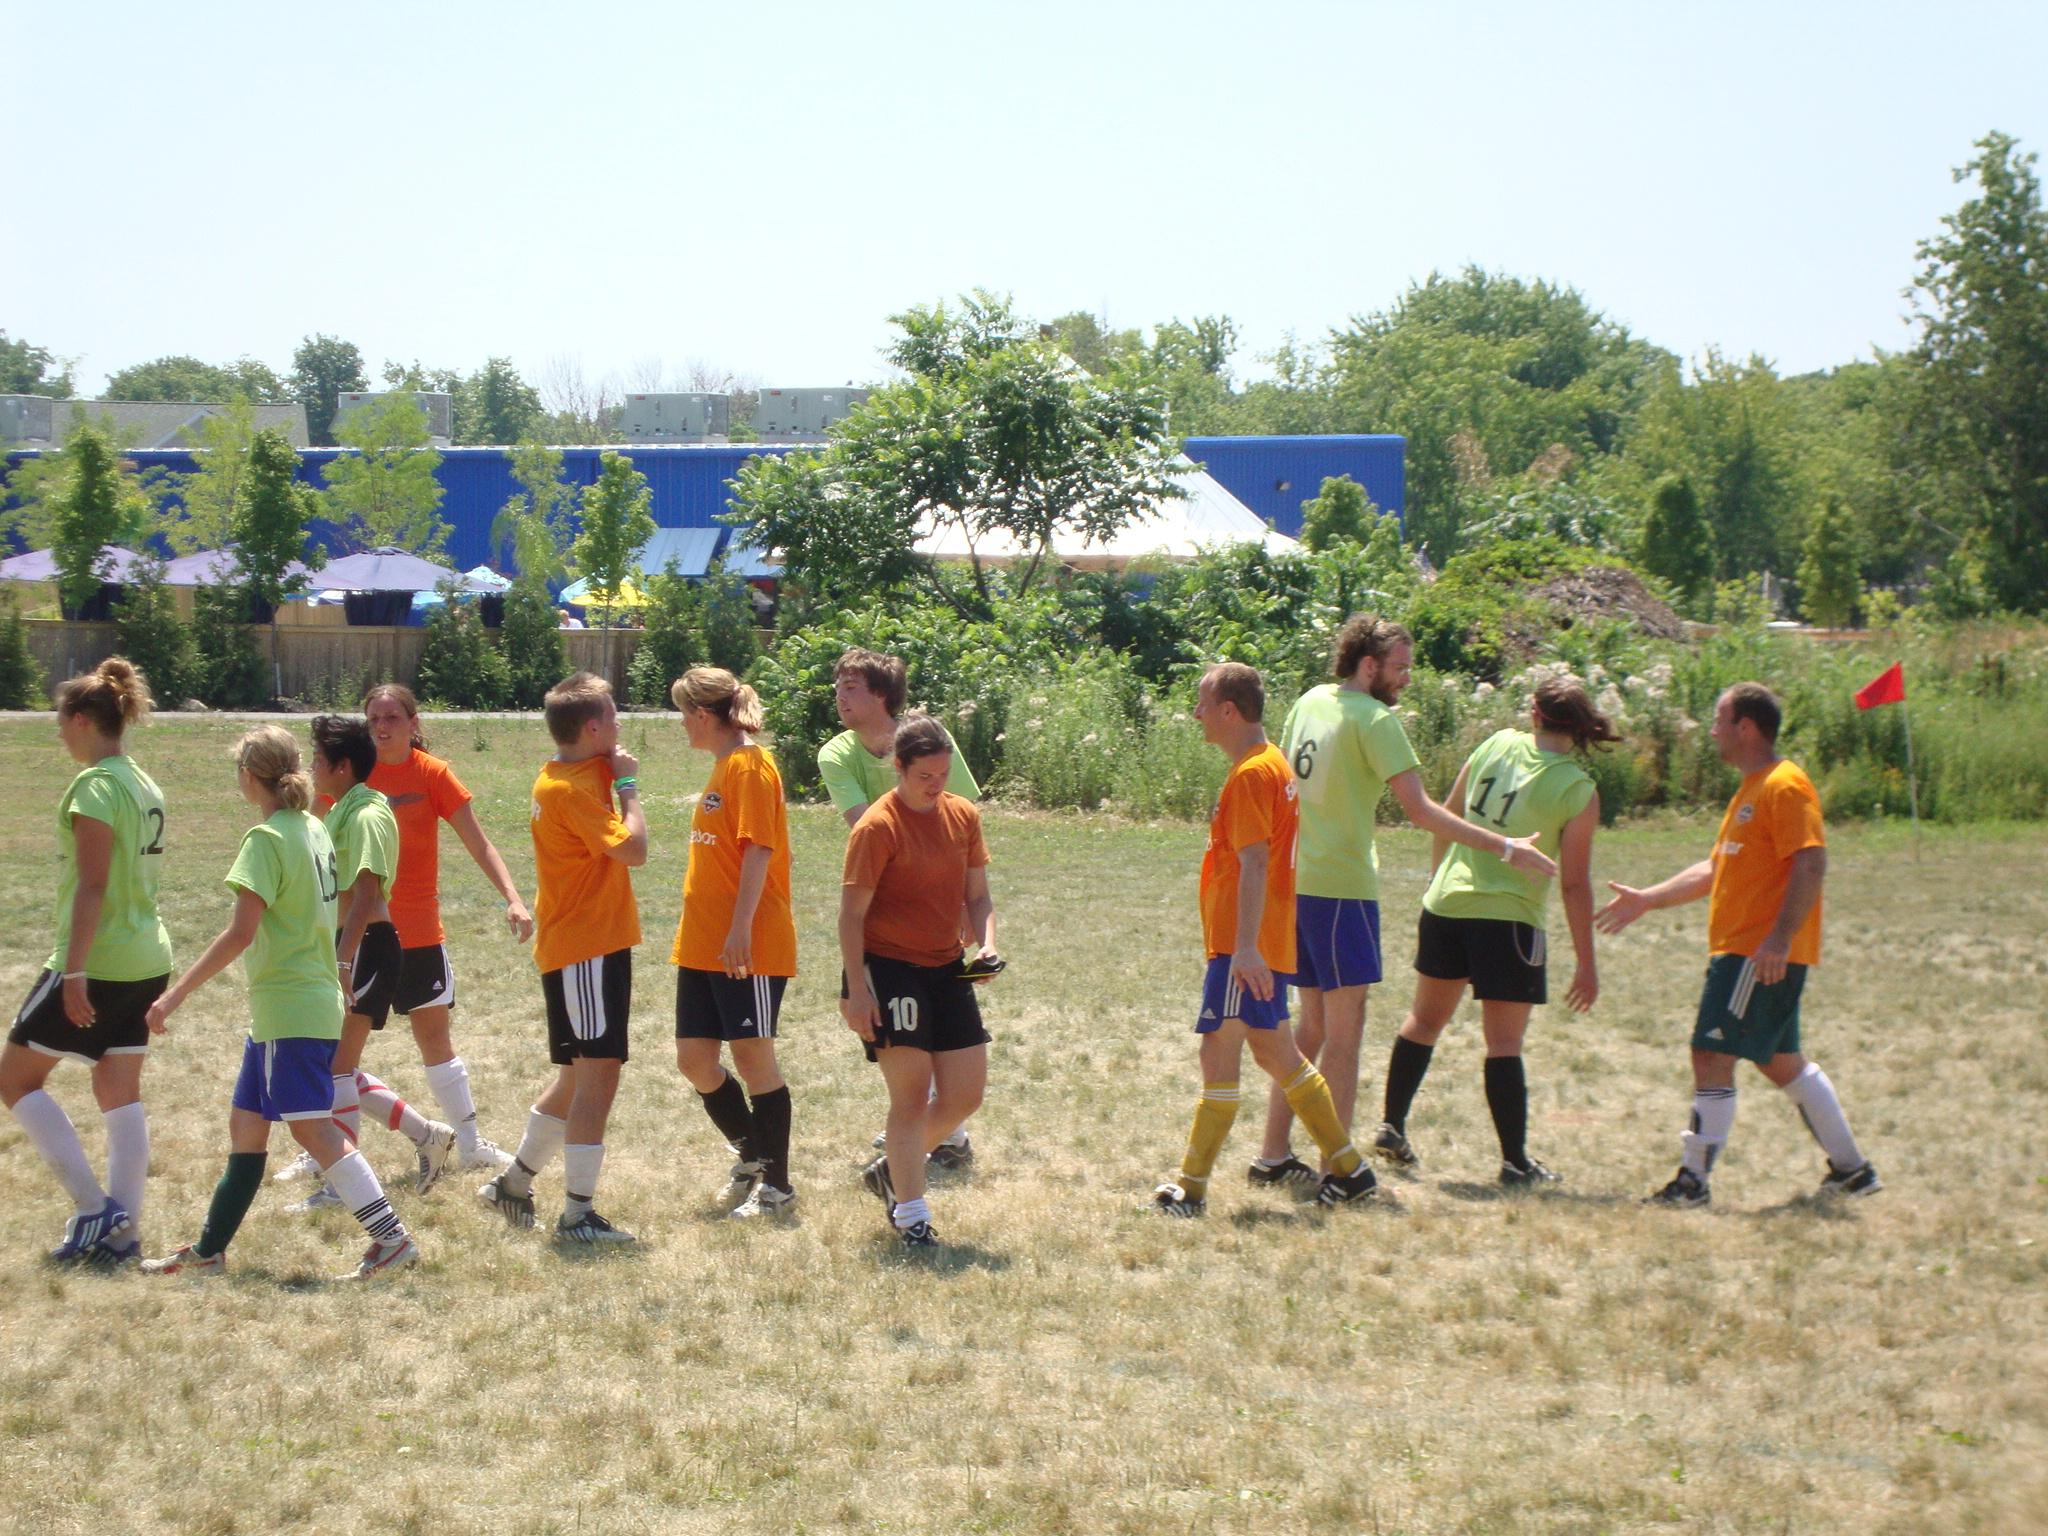 Put-in-Bay Cup 6v6 Soccer Challenge